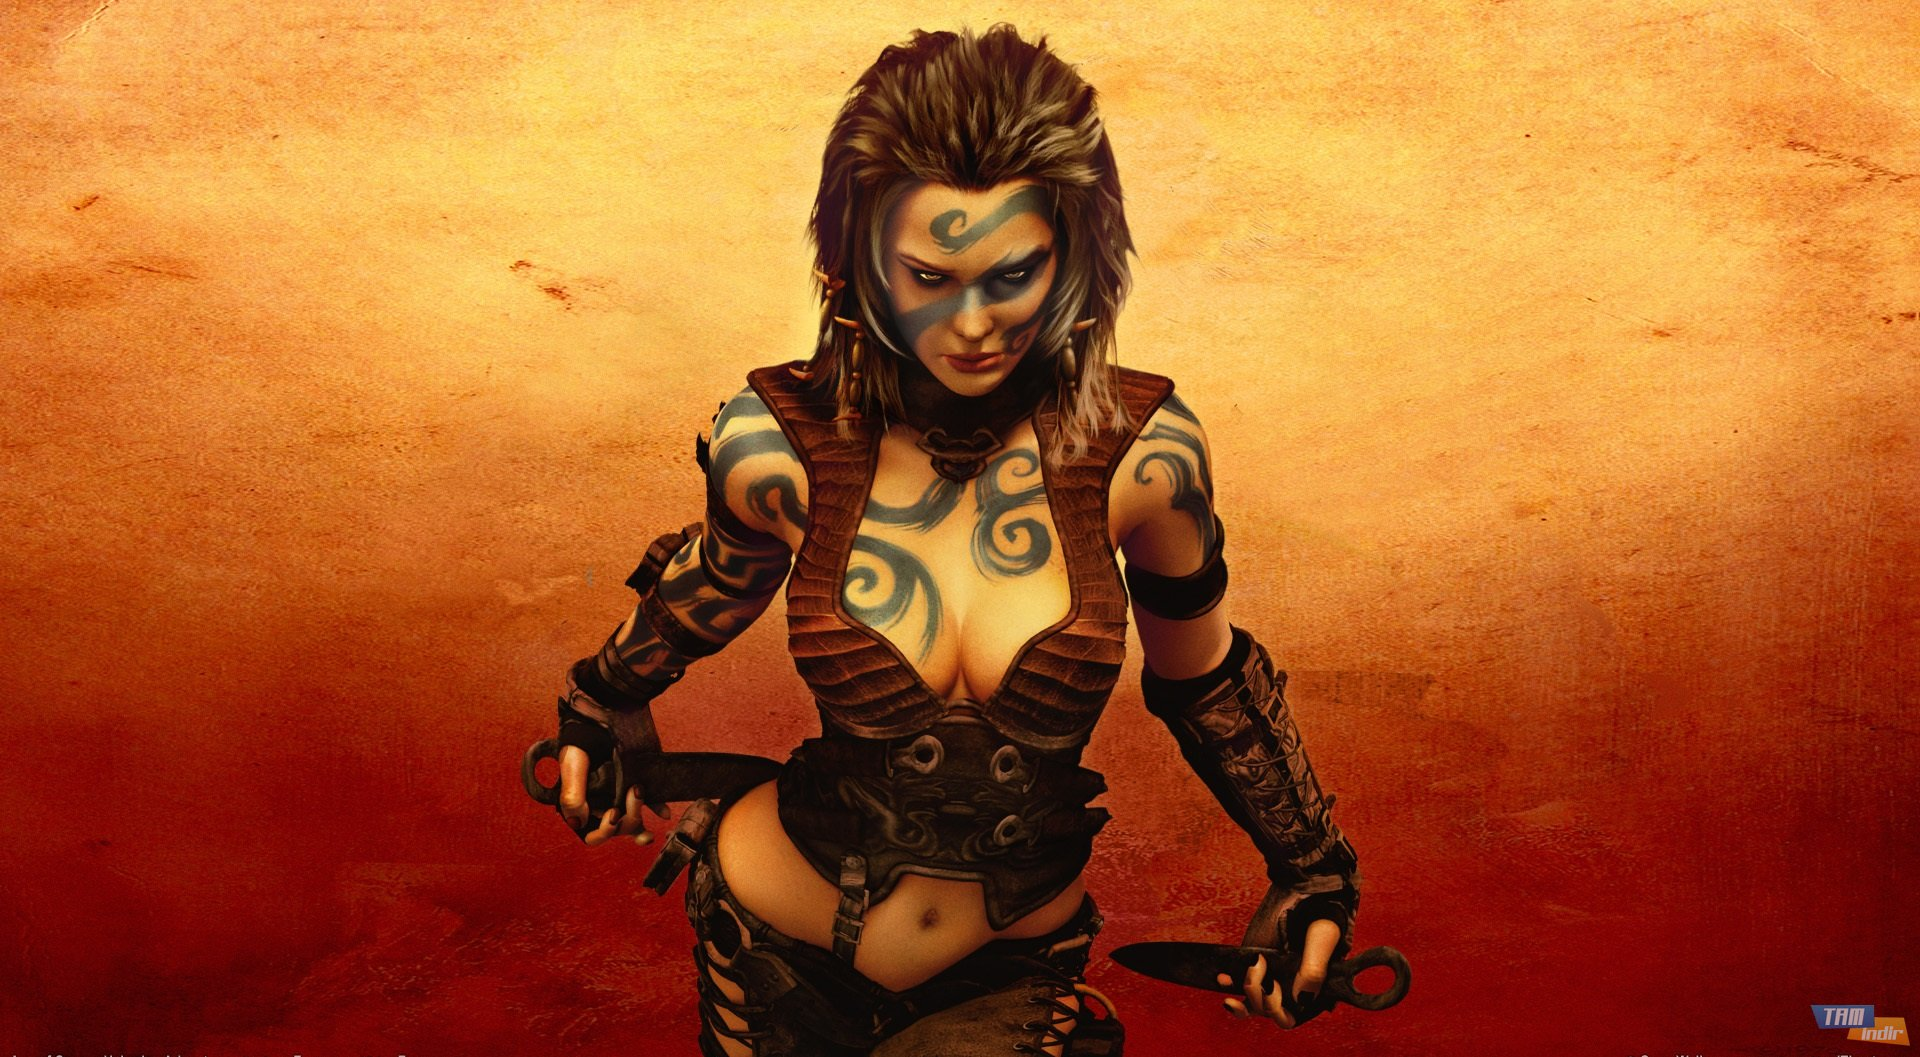 Age of conan online game - 5